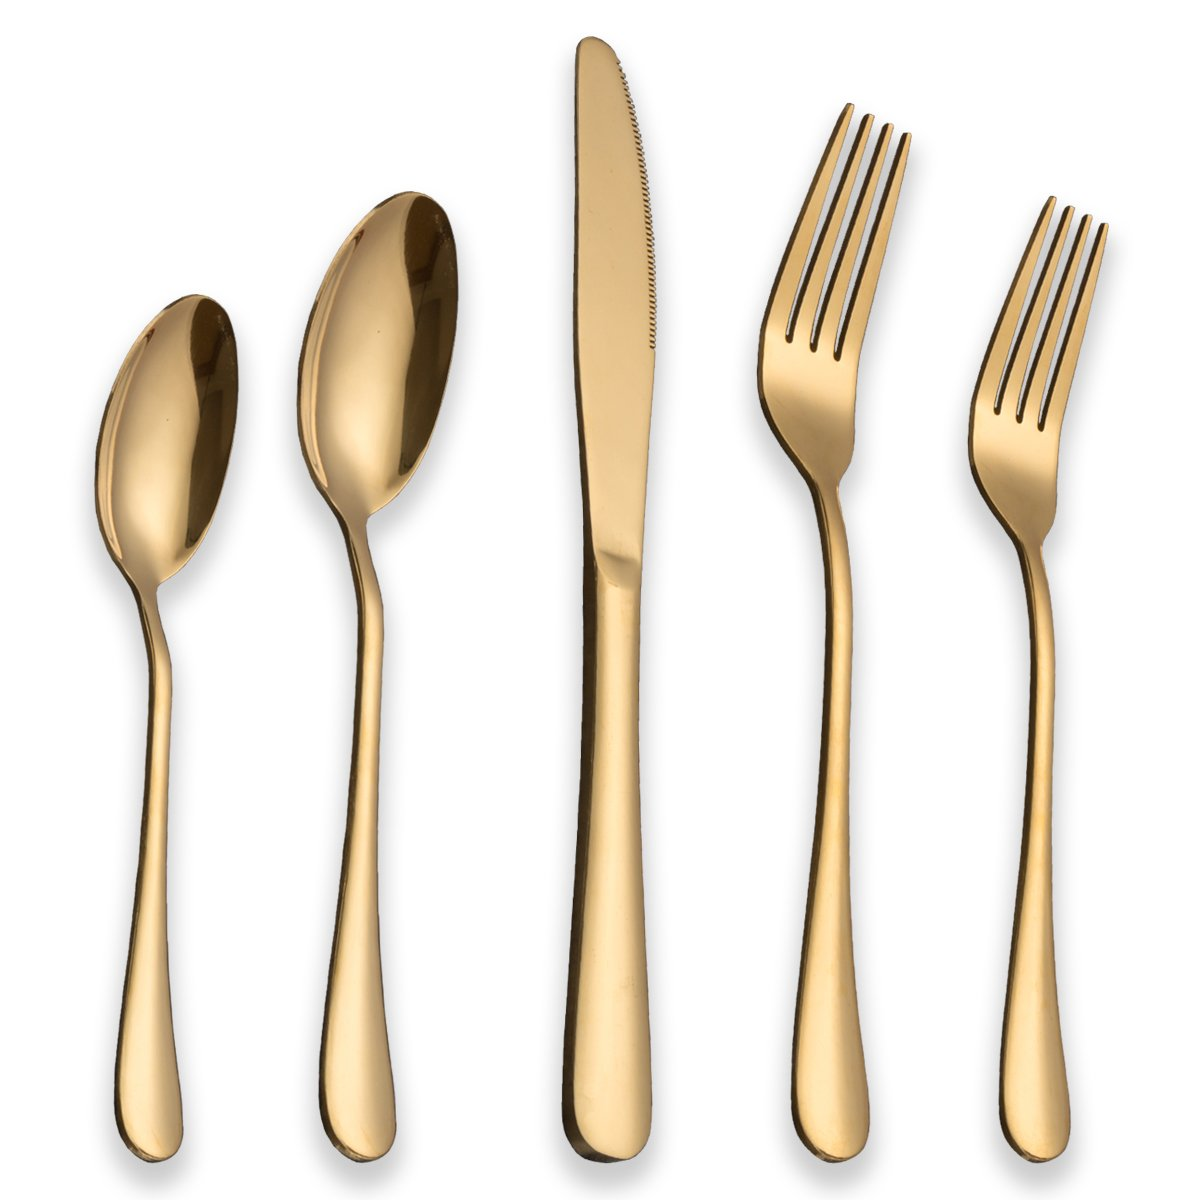 FanBell Flatware Set 20 Piece, Stainless Steel Titanium Gold Plated, Golden Color Flatware Set, Silverware, Cutlery Set Service For 4 (Shiny Gold)